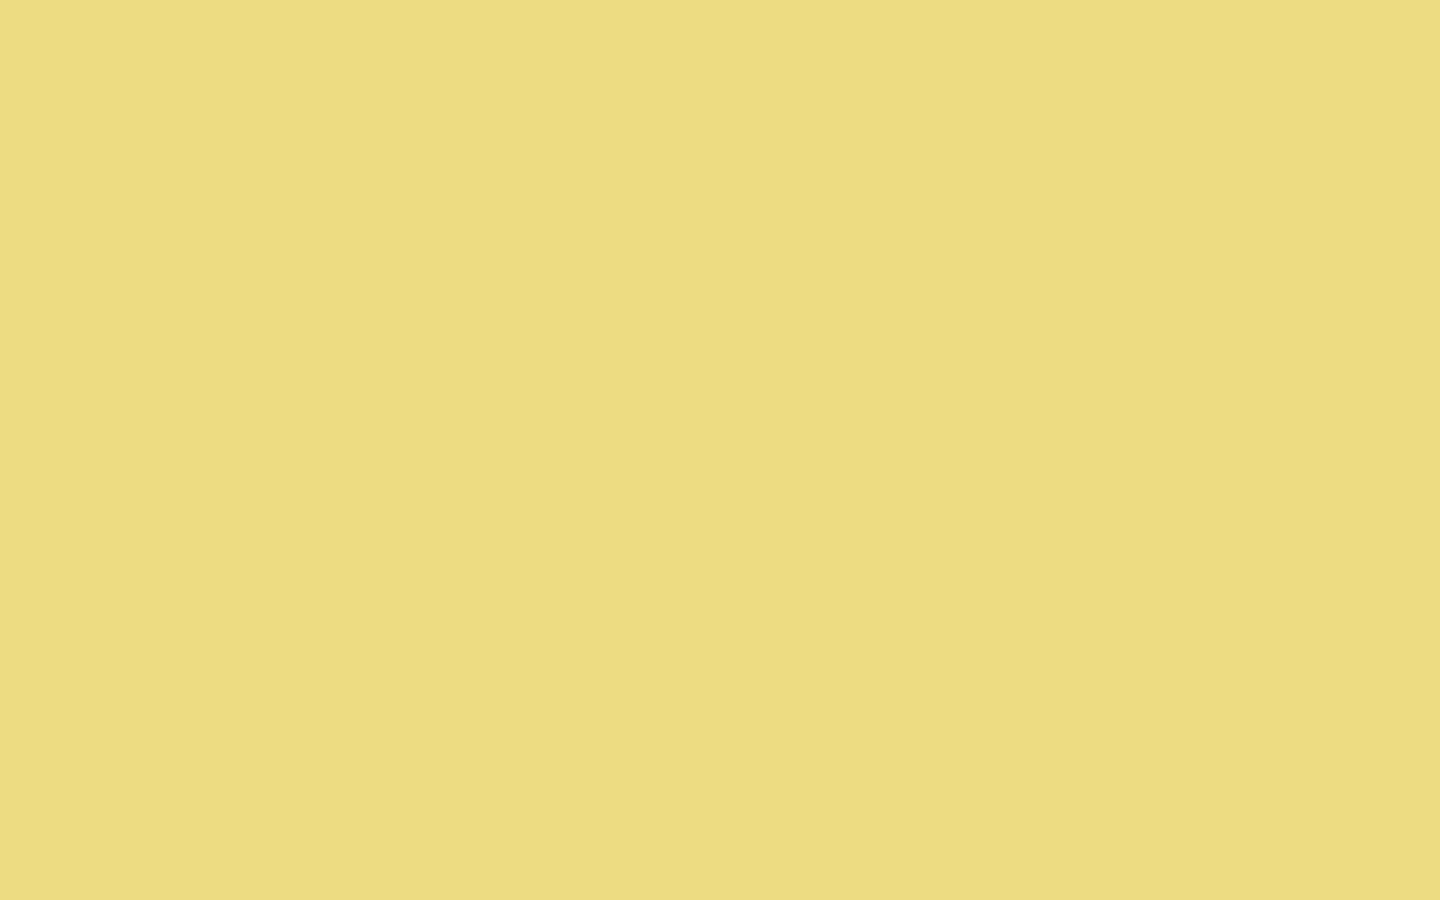 1440x900 Flax Solid Color Background